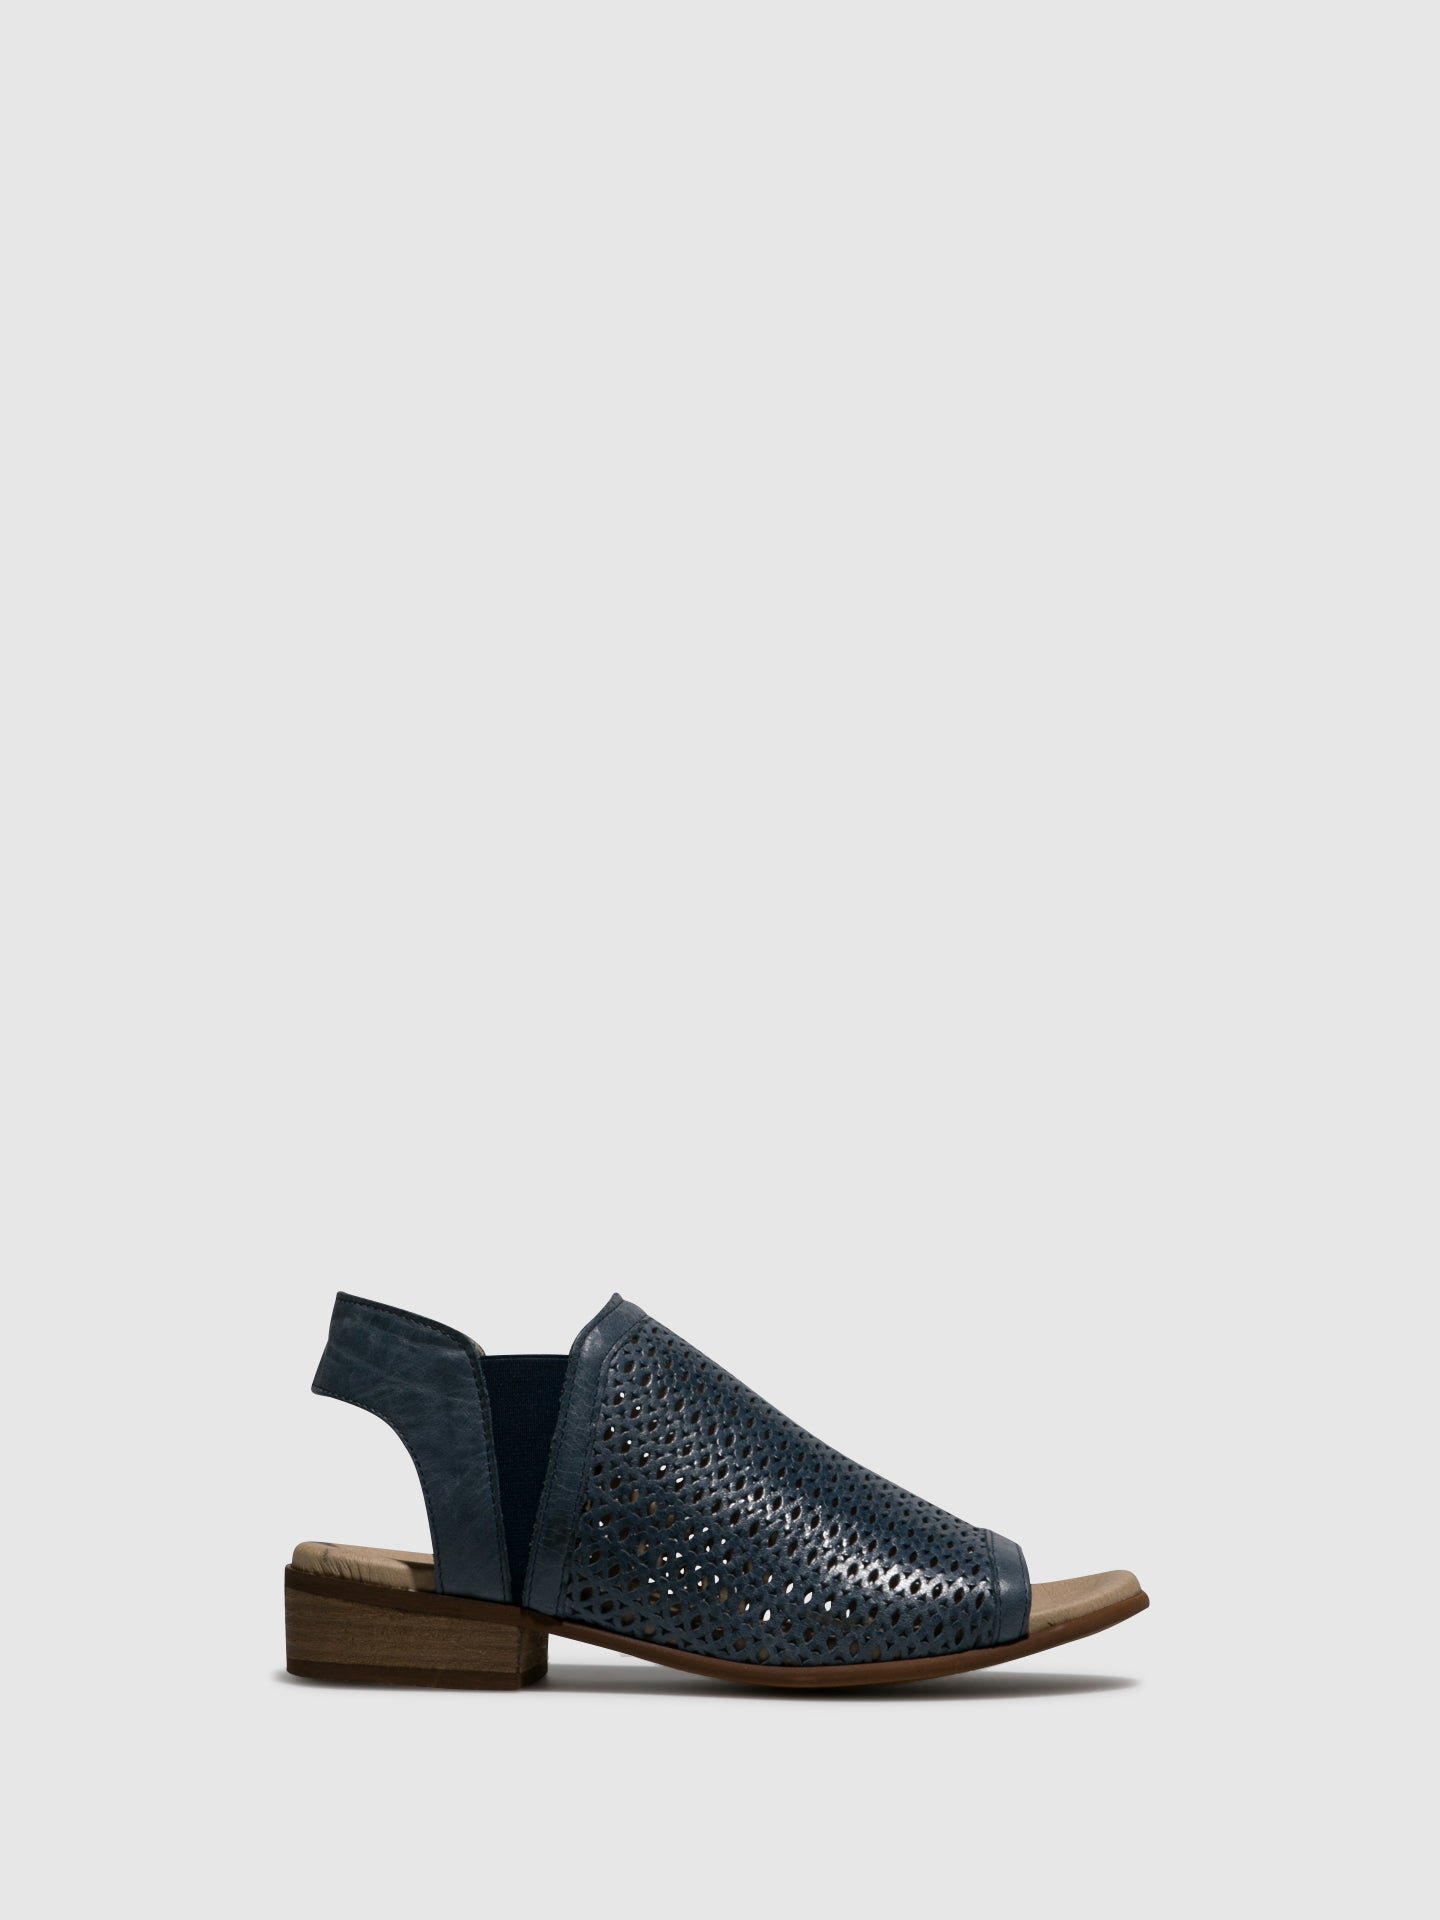 Bos&Co Blue Sling-Back Sandals